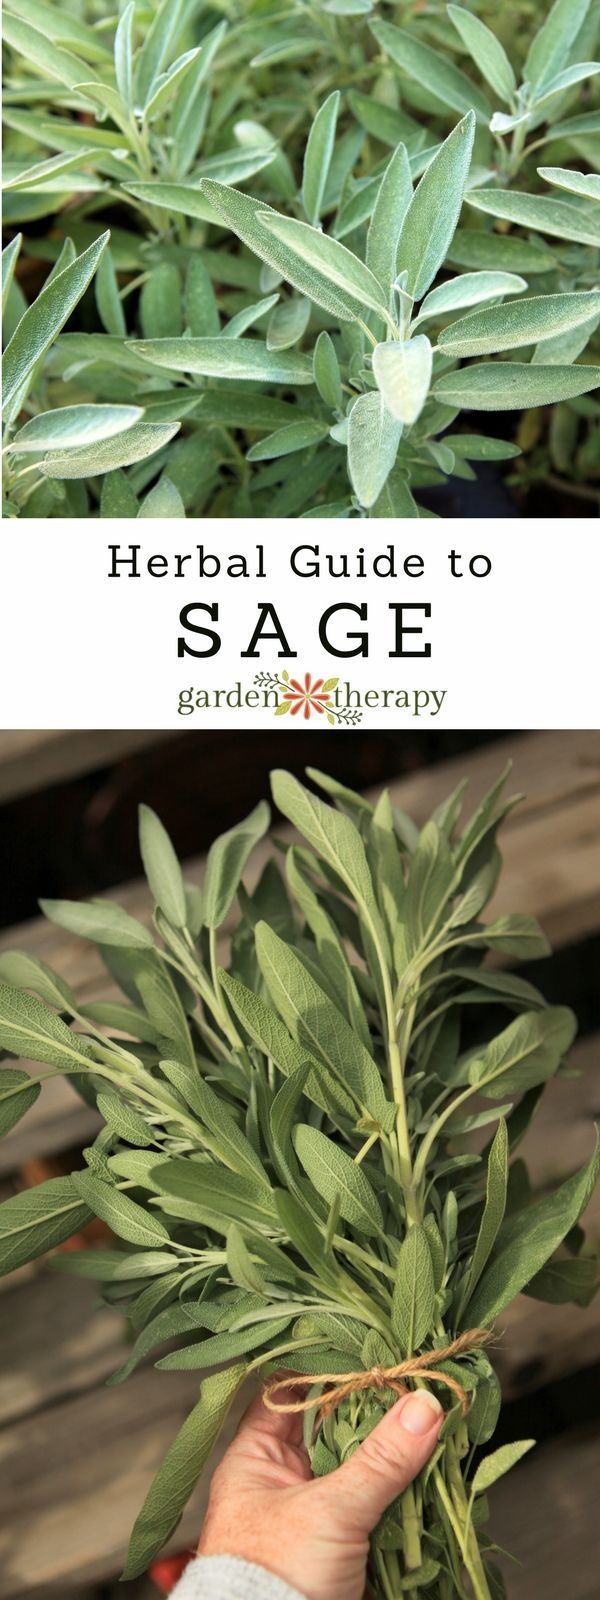 The Herbal Guide to Sage: an Easy-Growing Healing Herb #herbsgarden